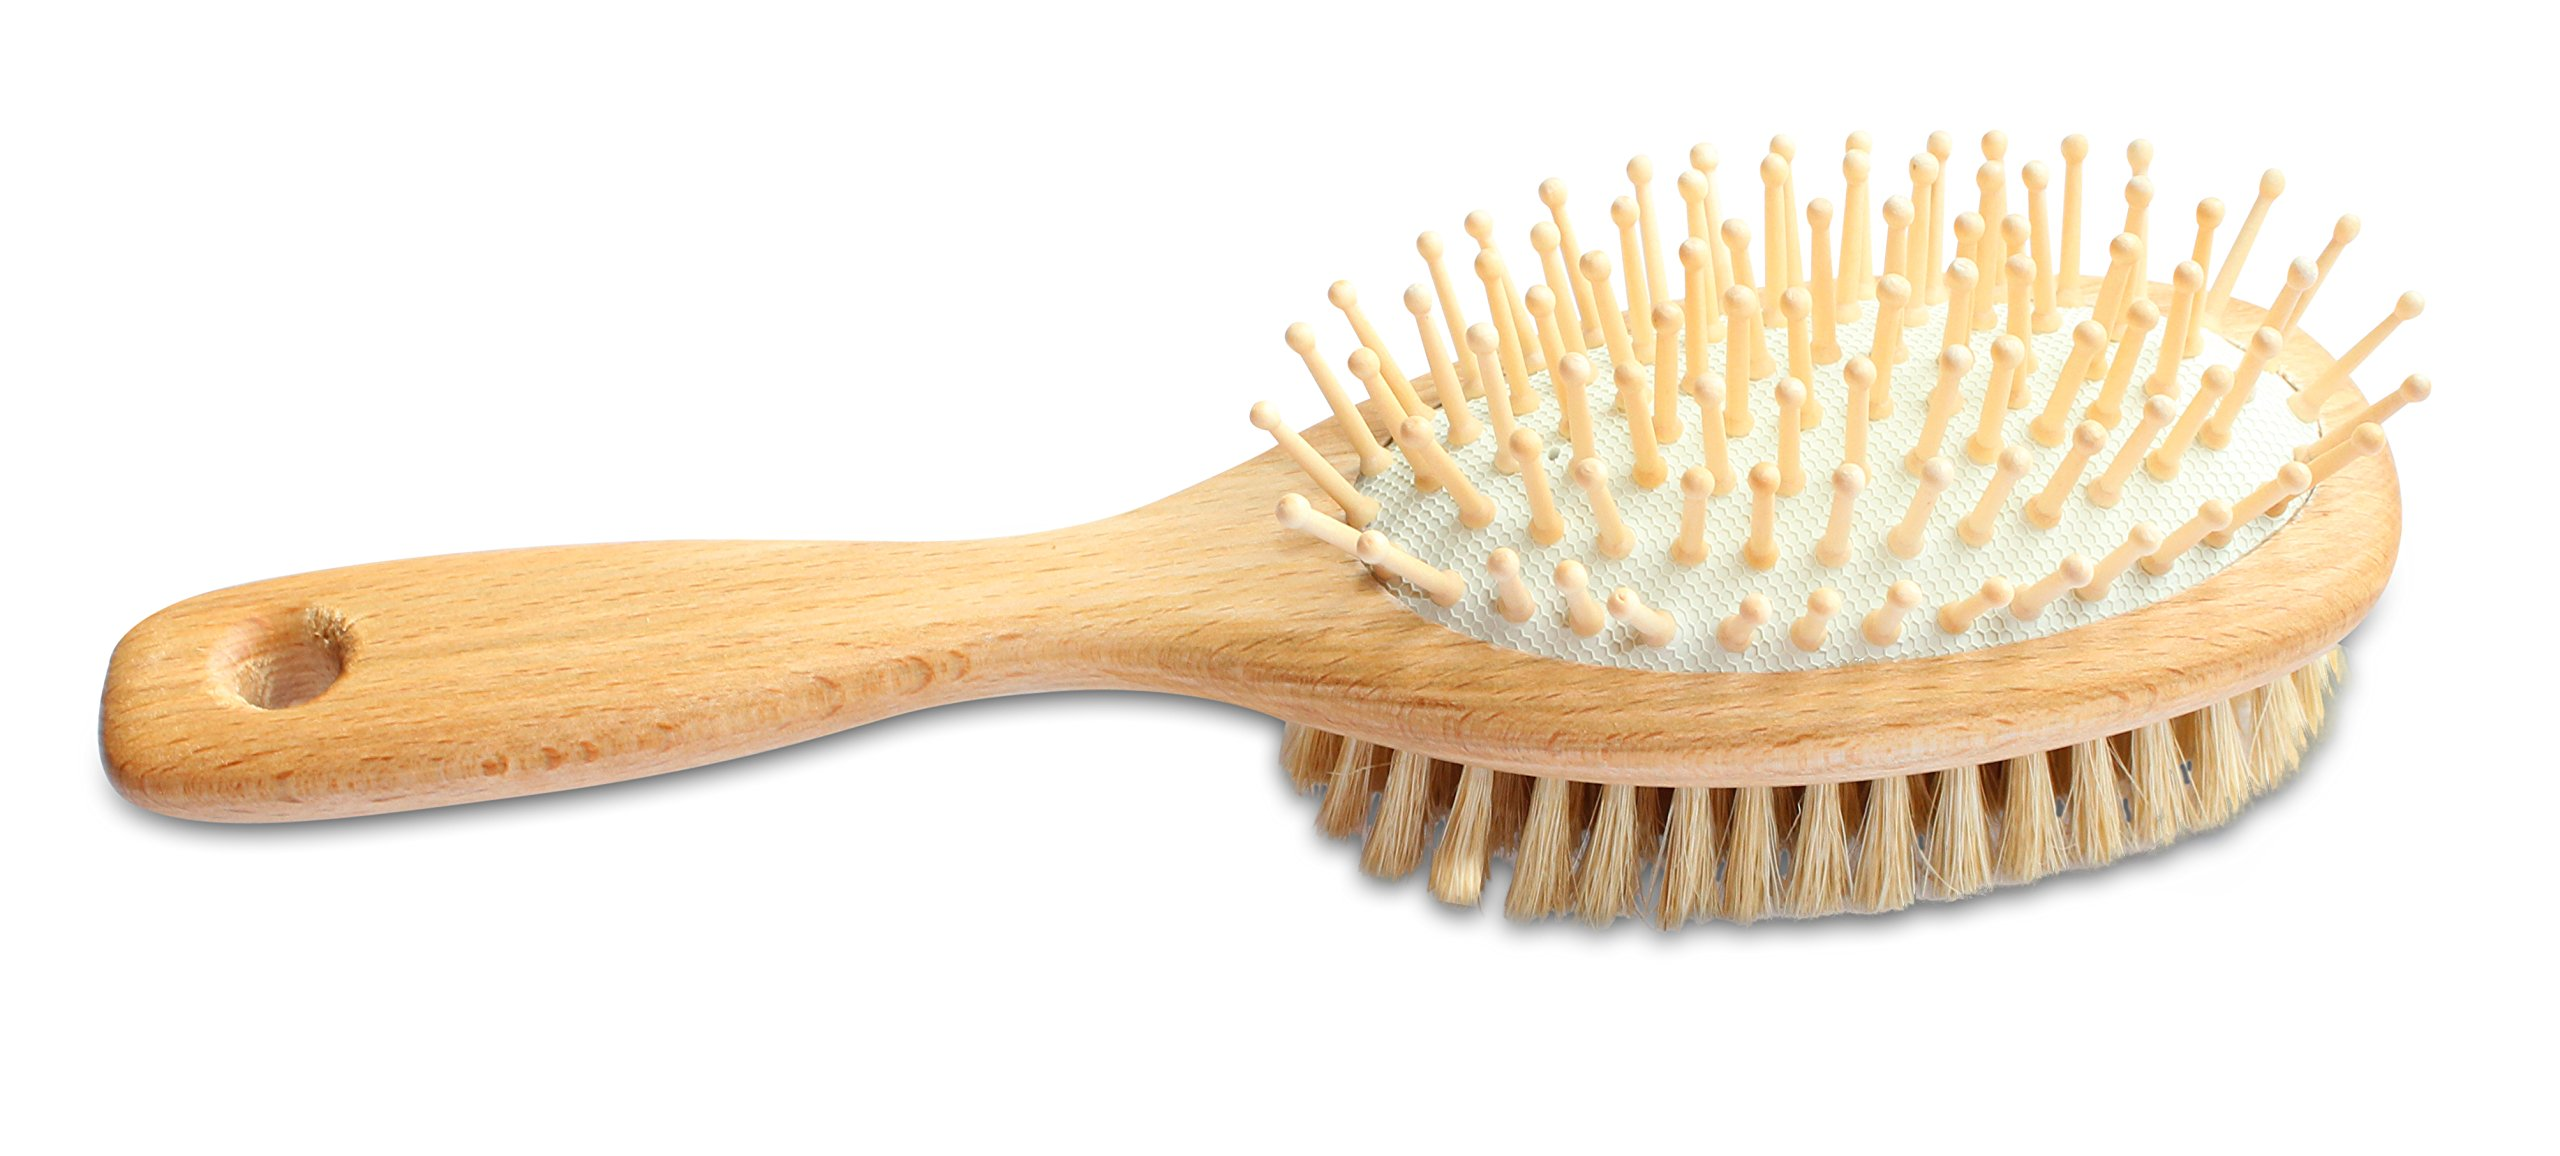 Mars Professional Wood Pin and Bristle Brush for Horses, Mane and Tail, Made in Germany